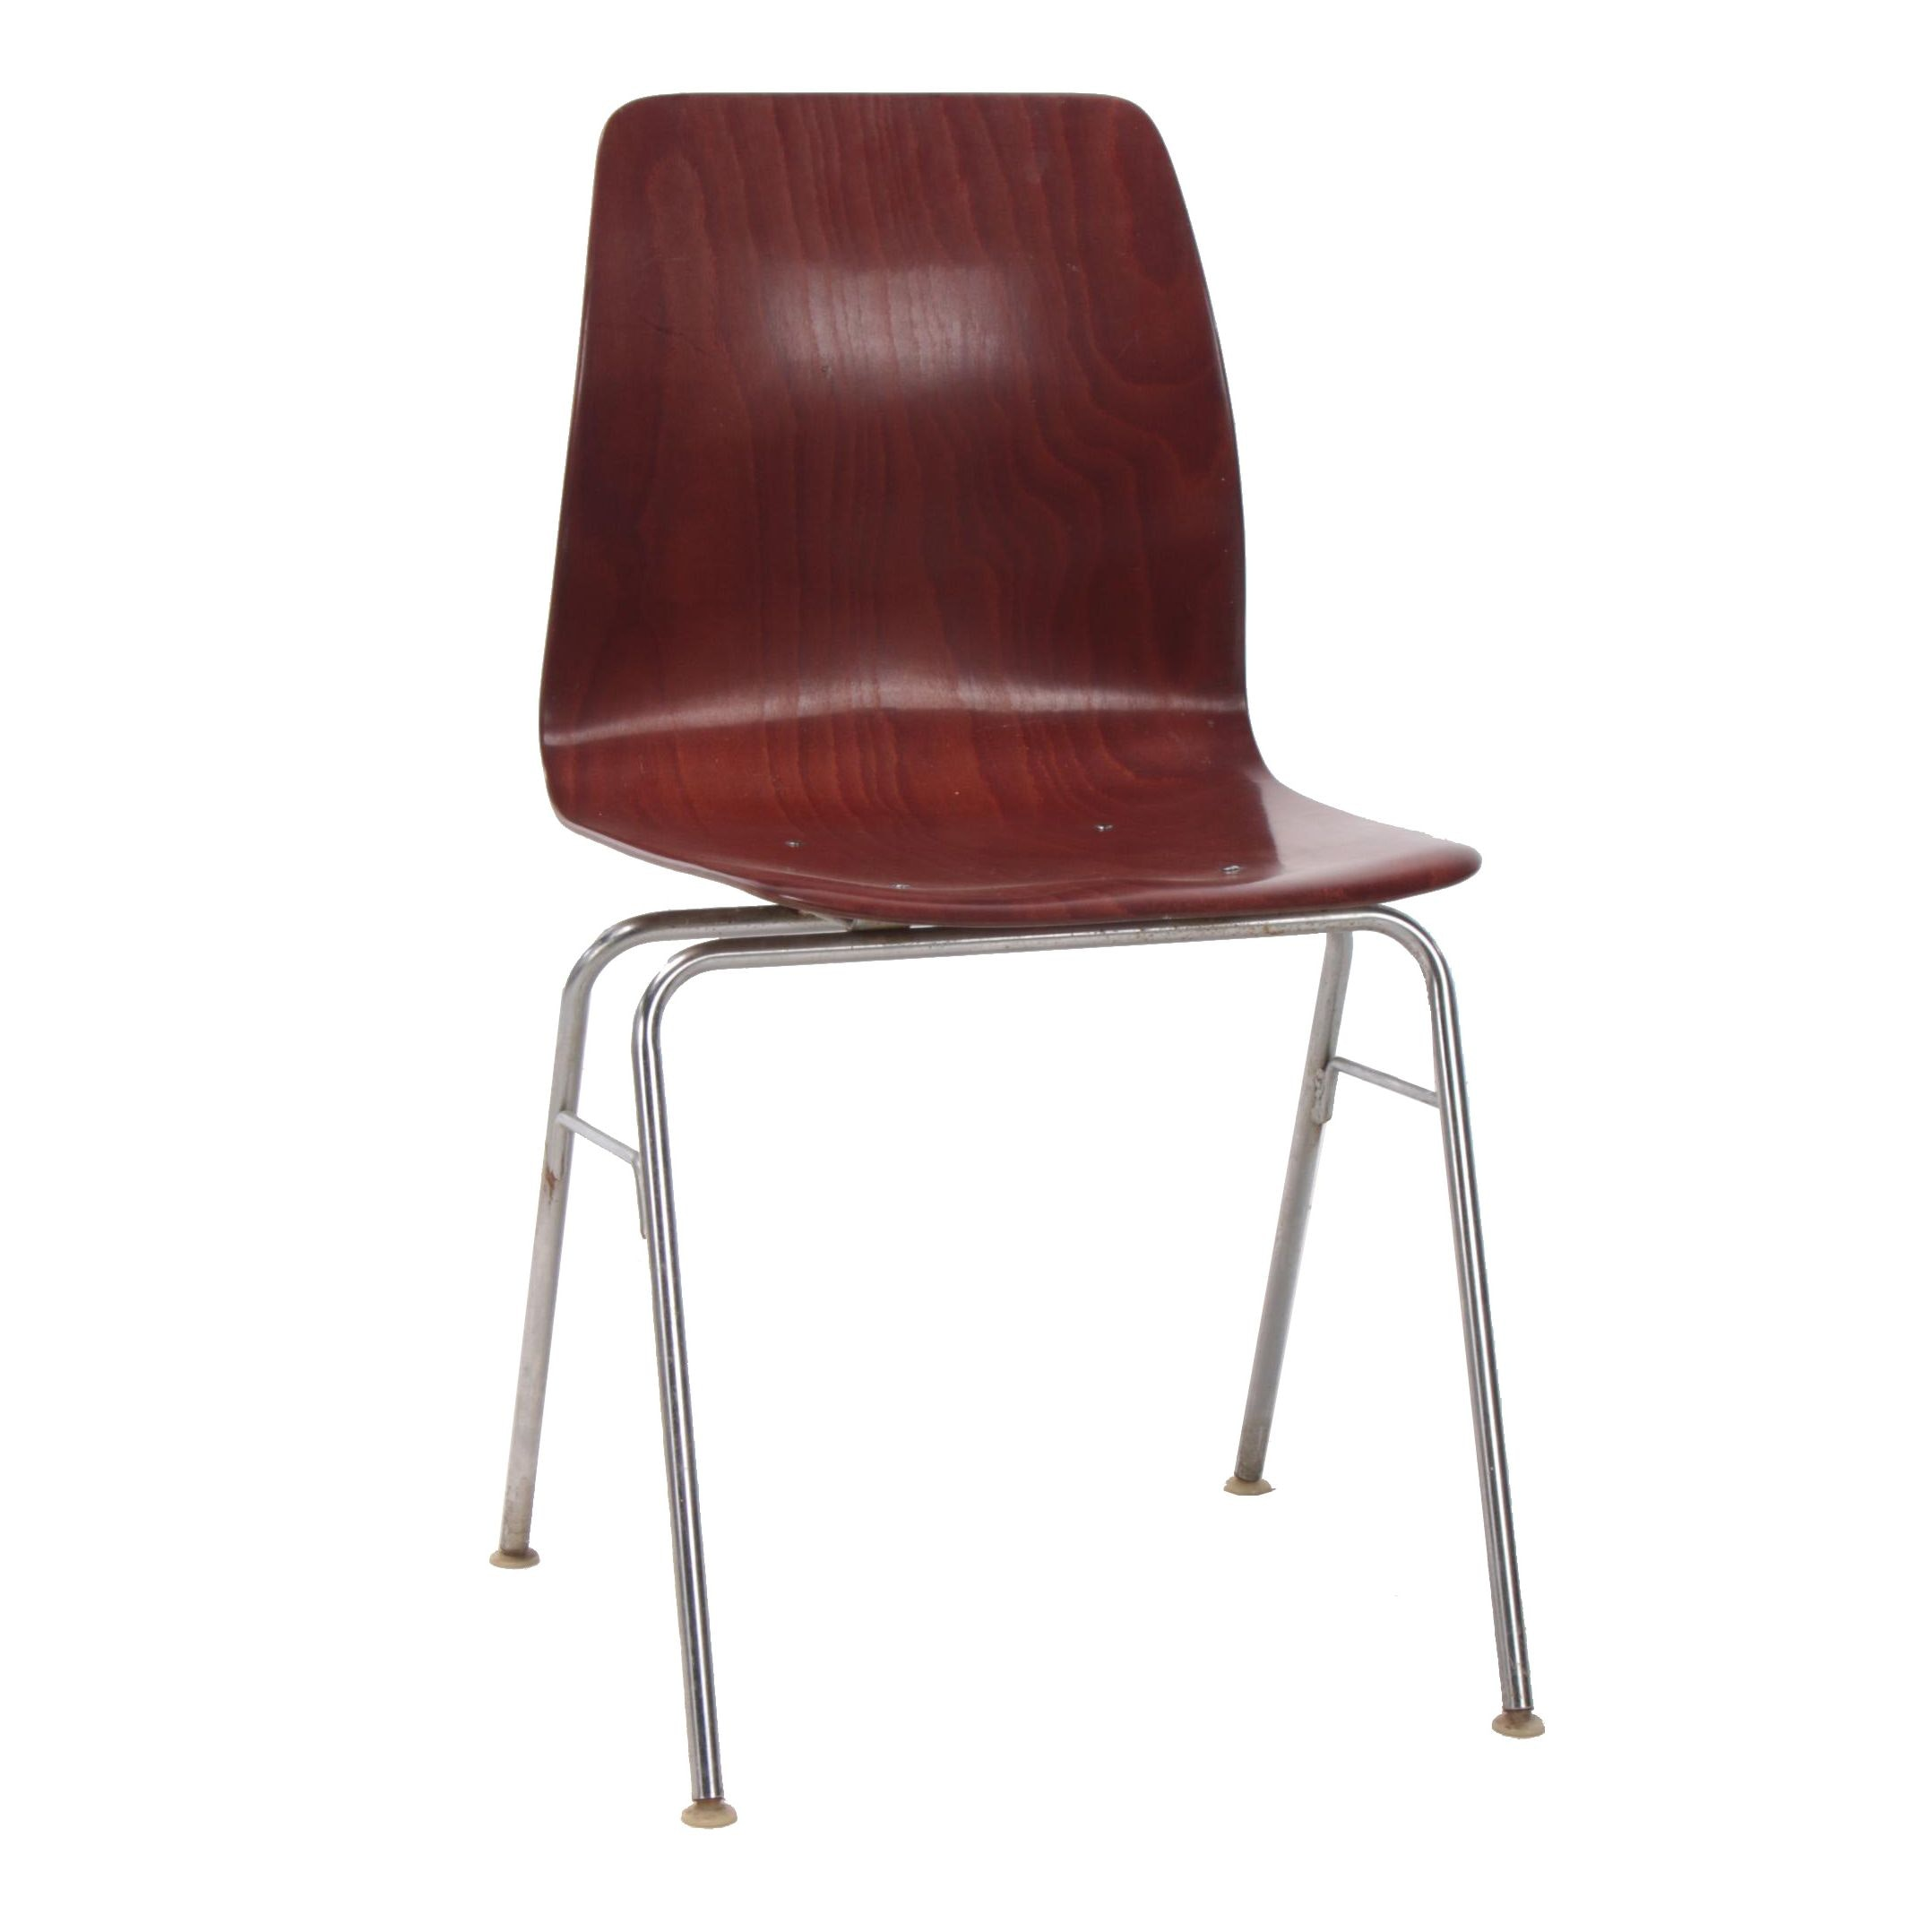 Royal Metal Co., Bentwood and Chrome Side Chair, Mid-Century